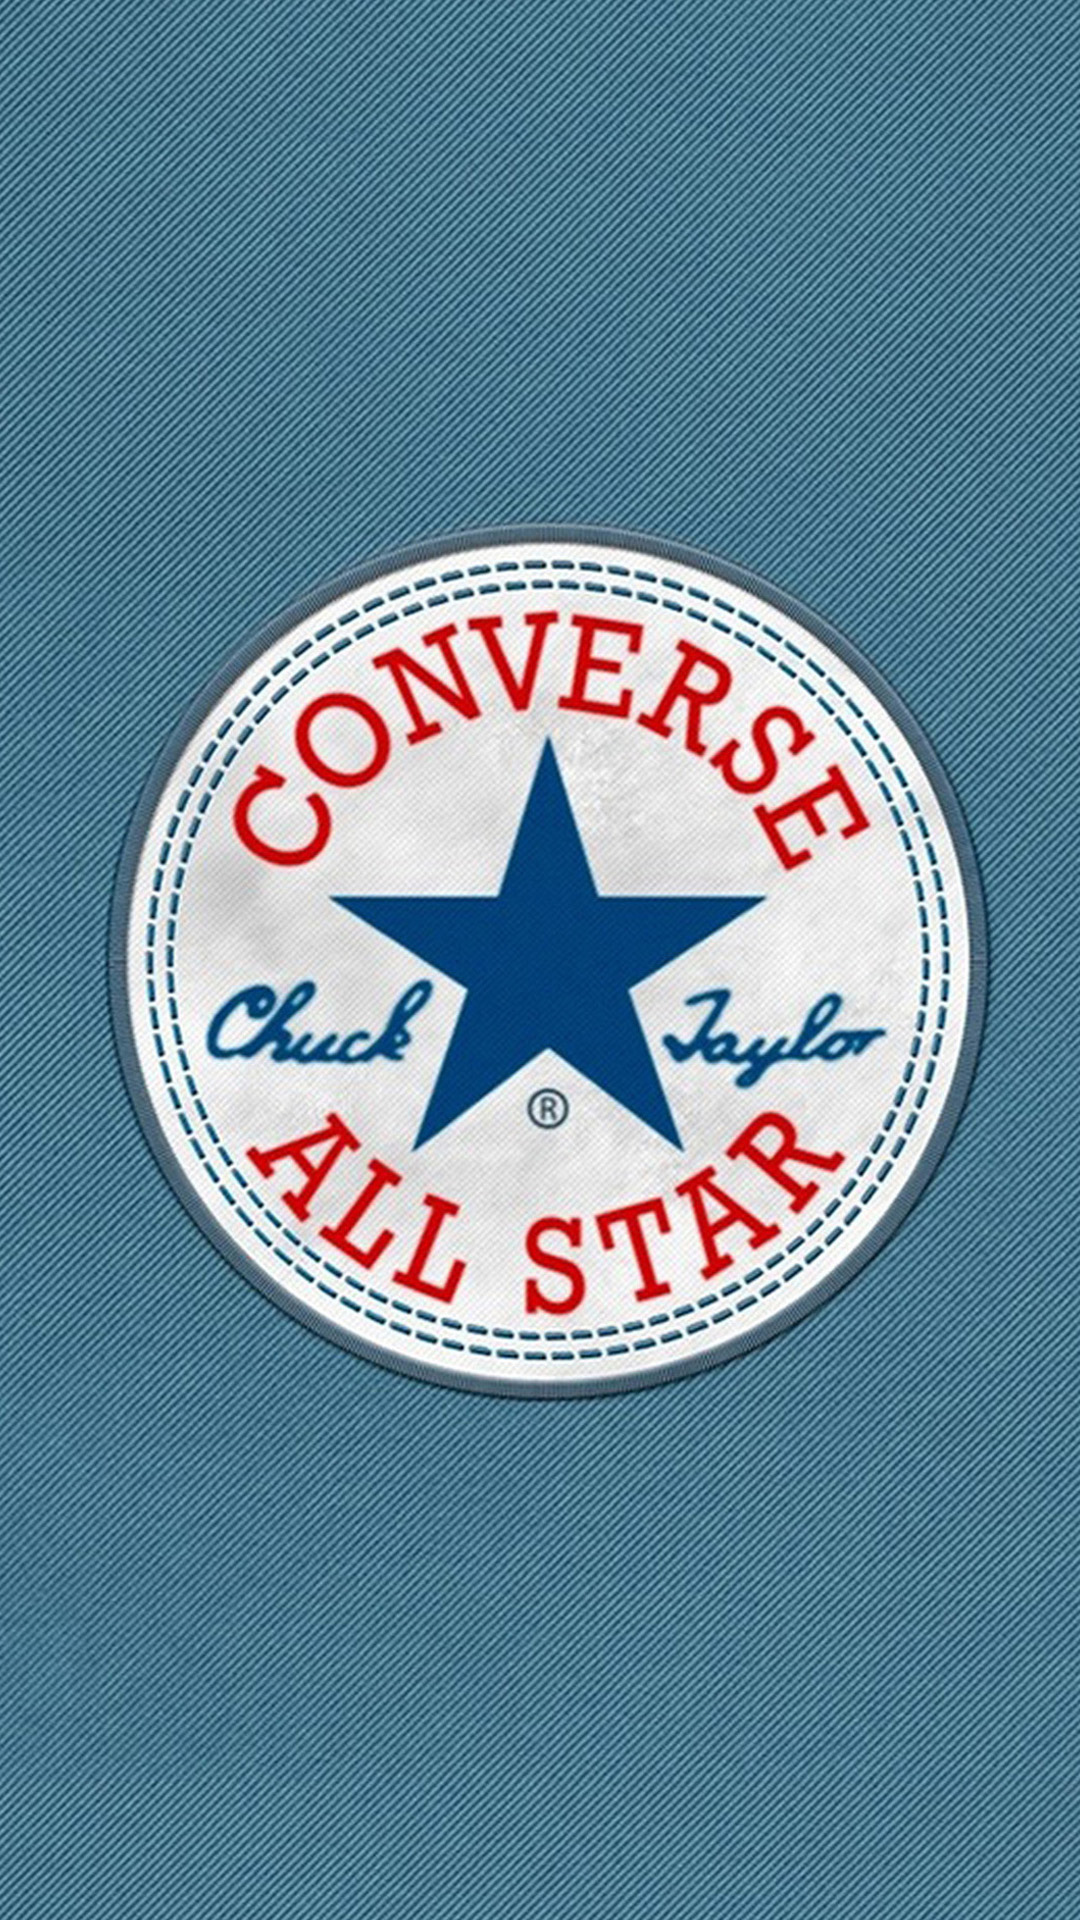 Converse All star logo - Best htc one wallpapers, free and ...